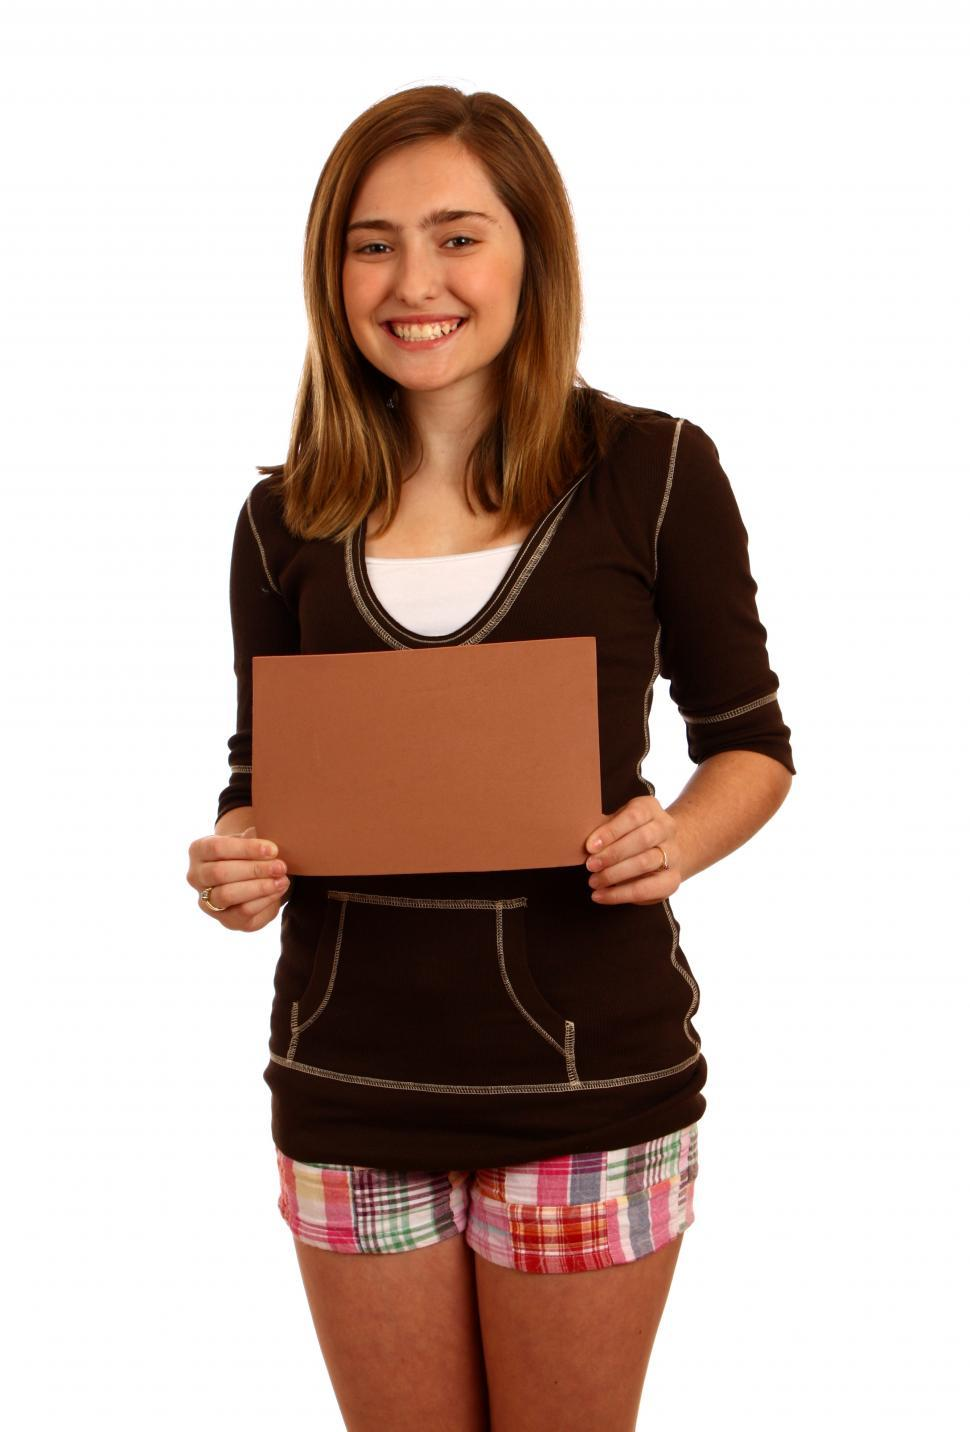 Download Free Stock HD Photo of A cute young girl posing with a blank brown sign Online